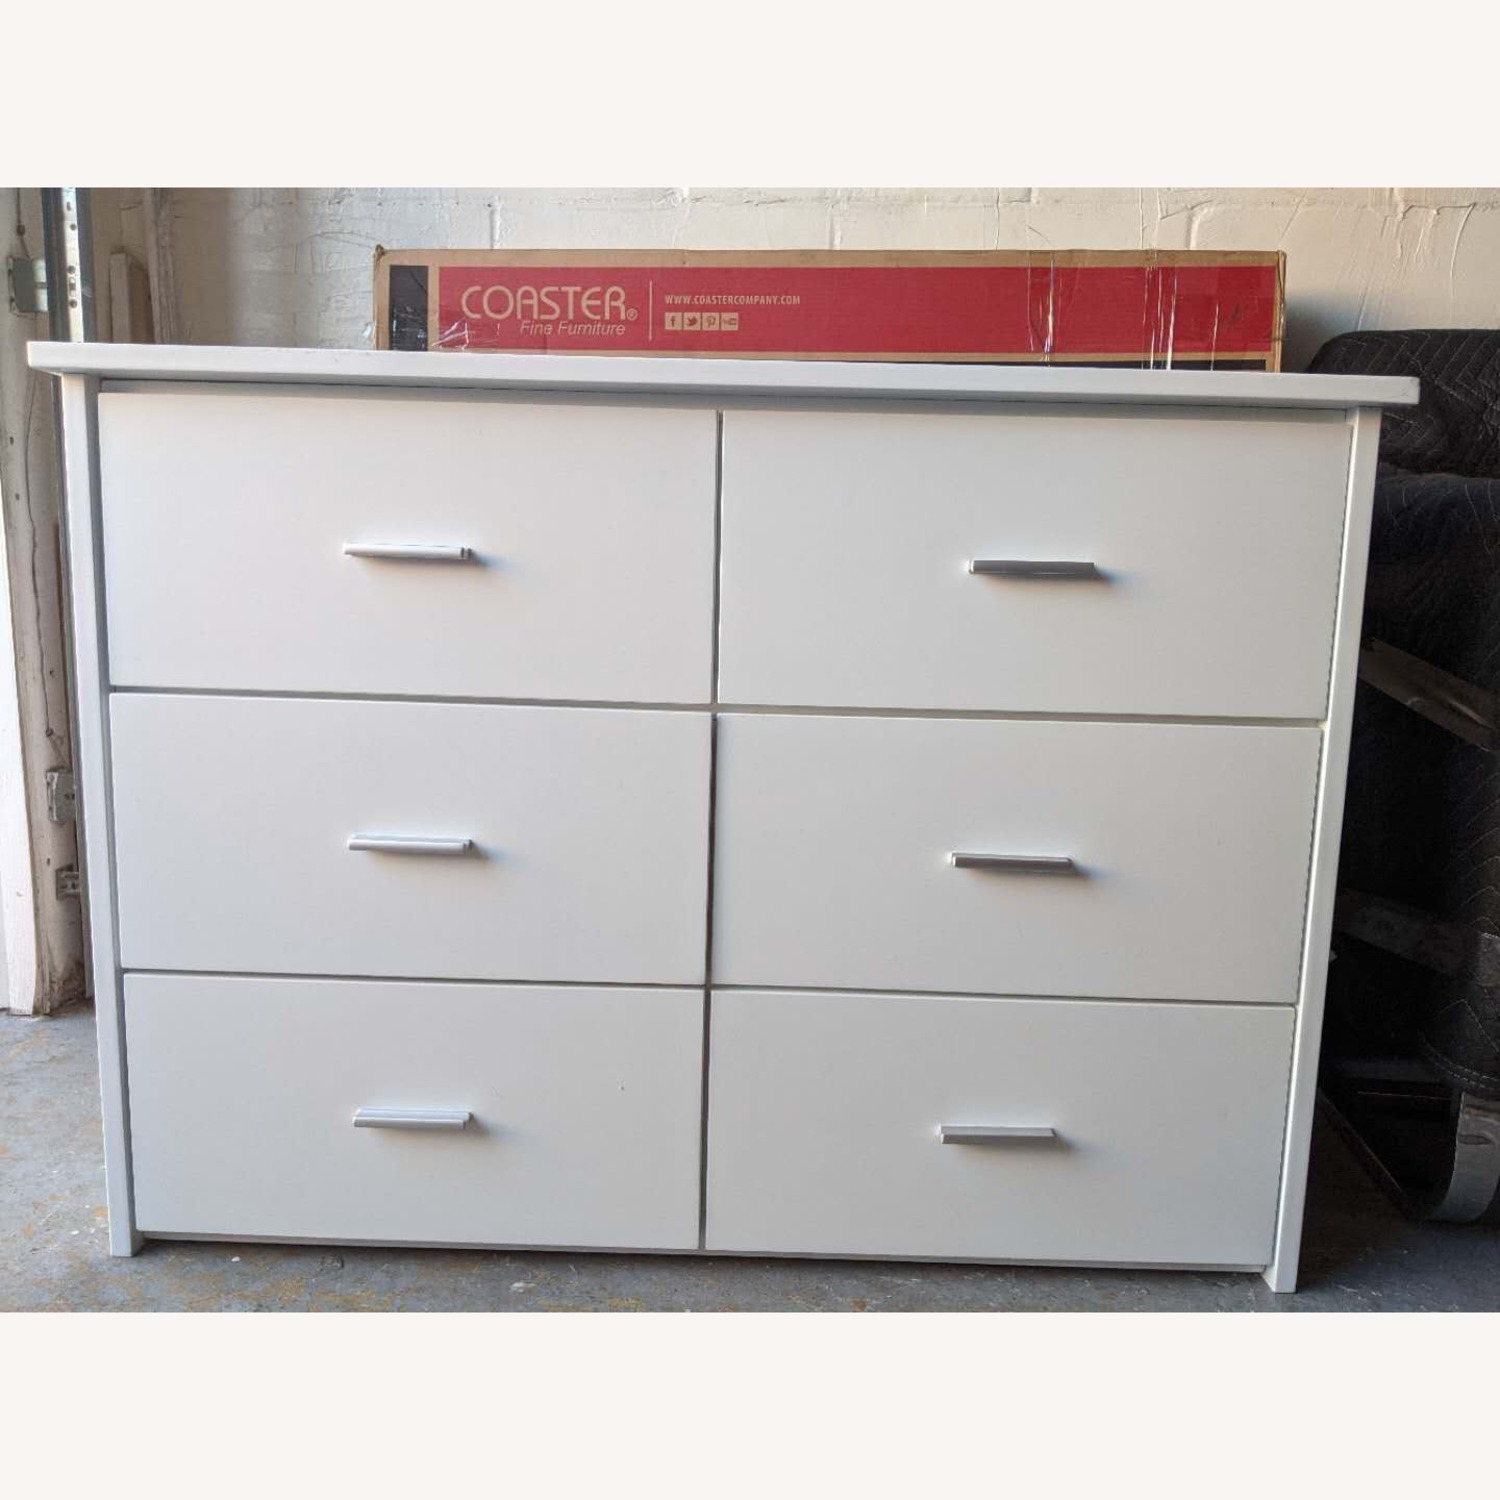 6-Drawer Storage Unit in White Finish - image-1